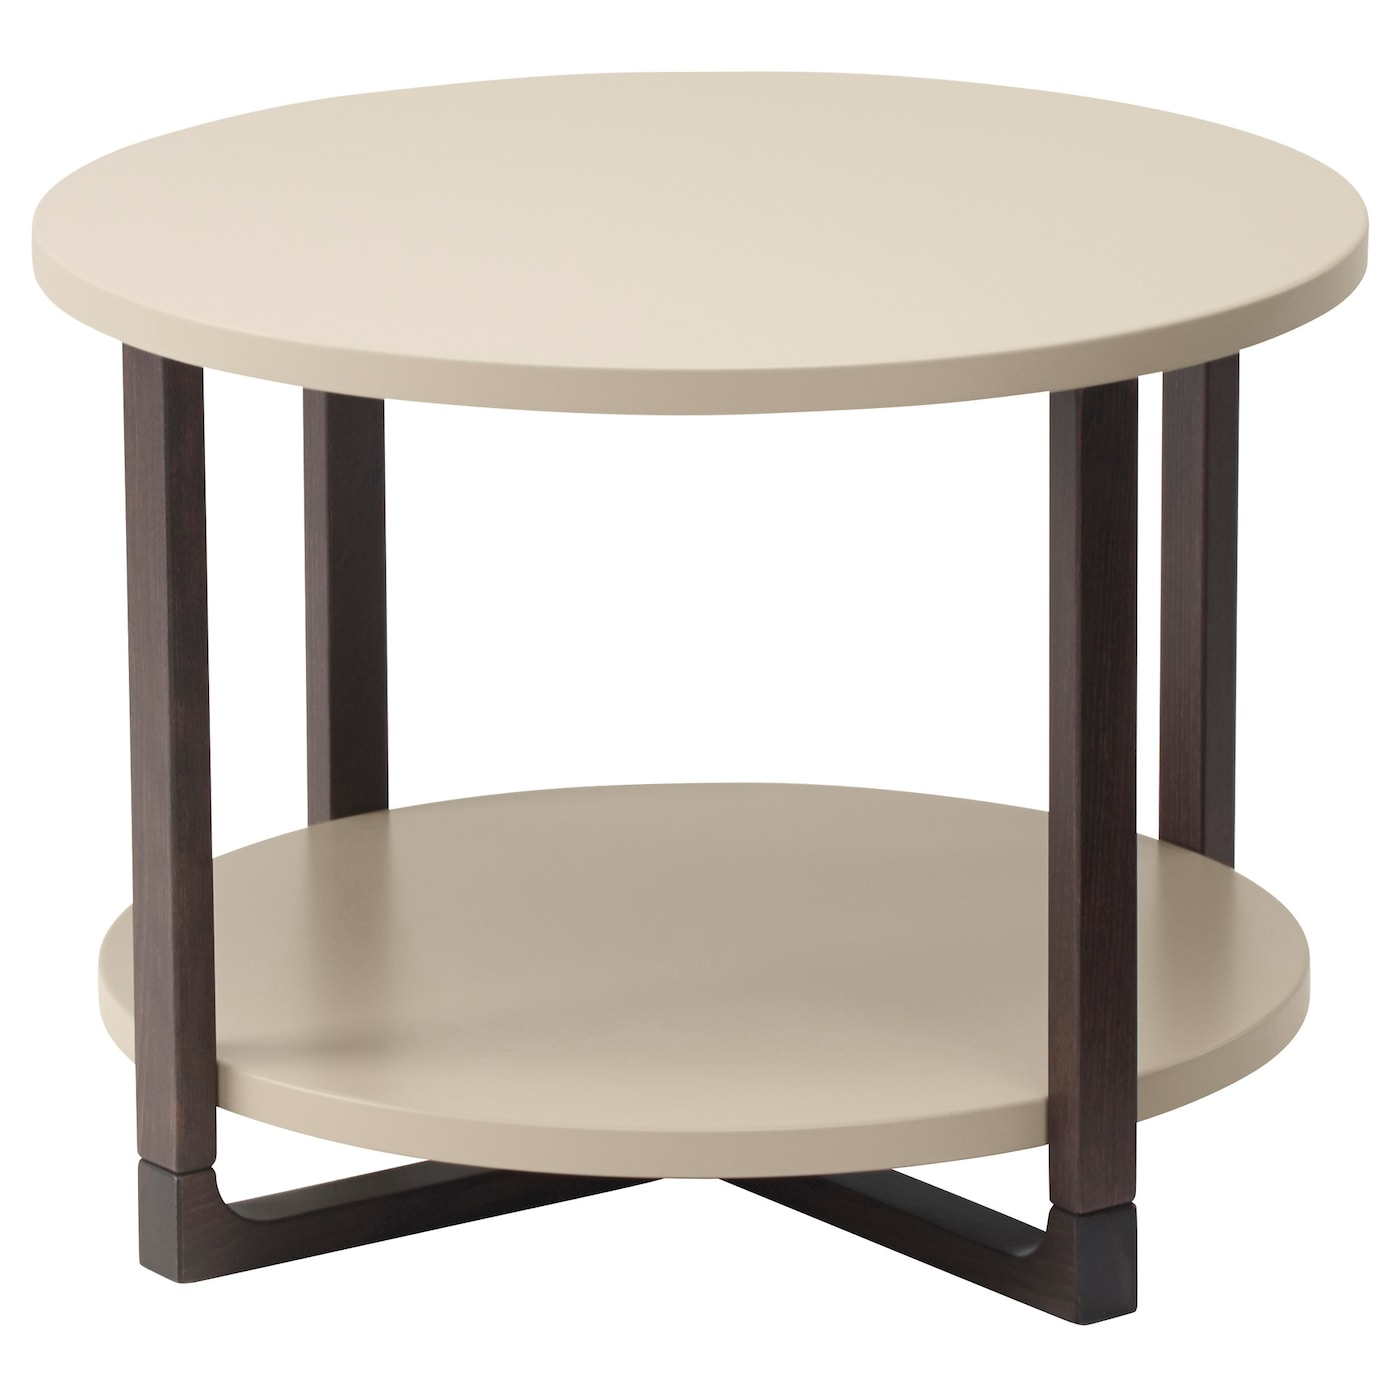 Rissna side table beige 60 cm ikea for 60s table design